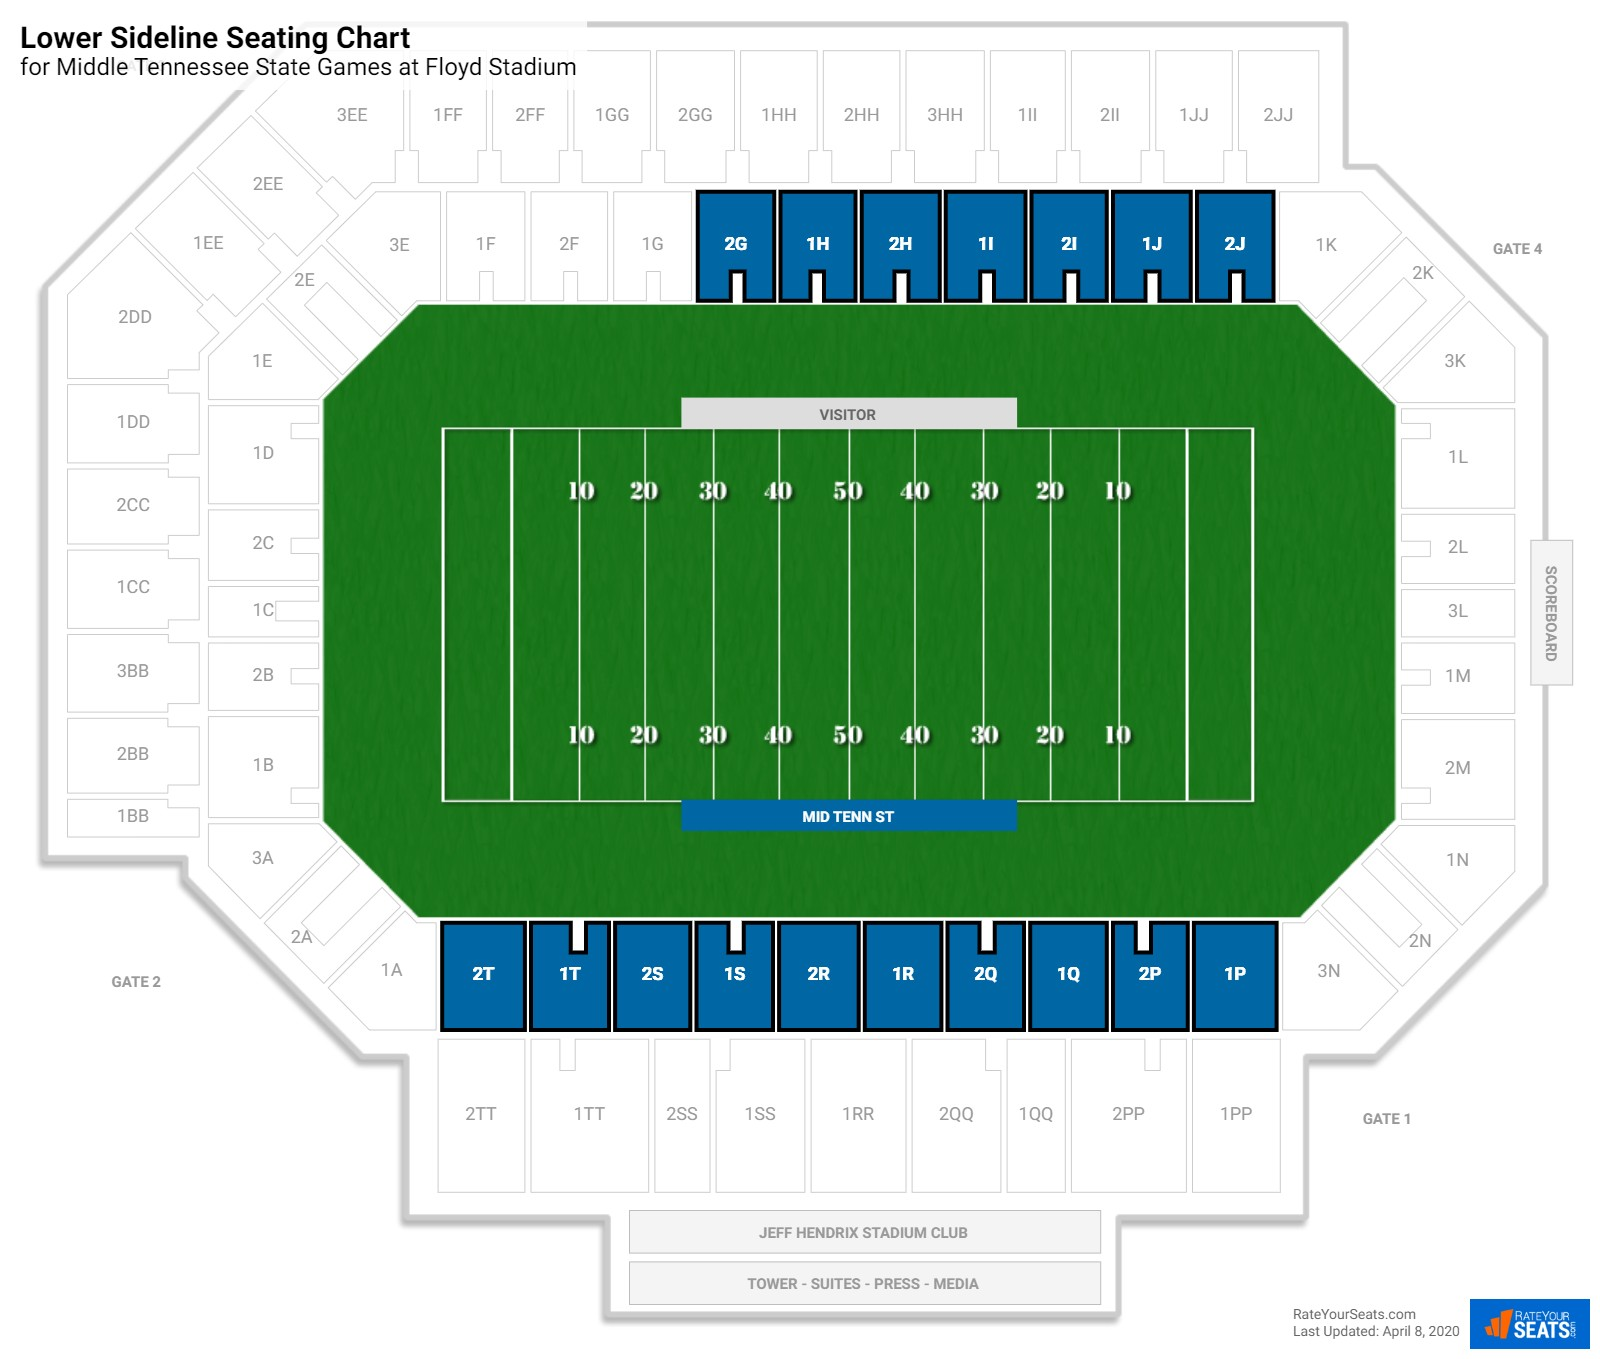 Floyd Stadium Lower Sideline seating chart